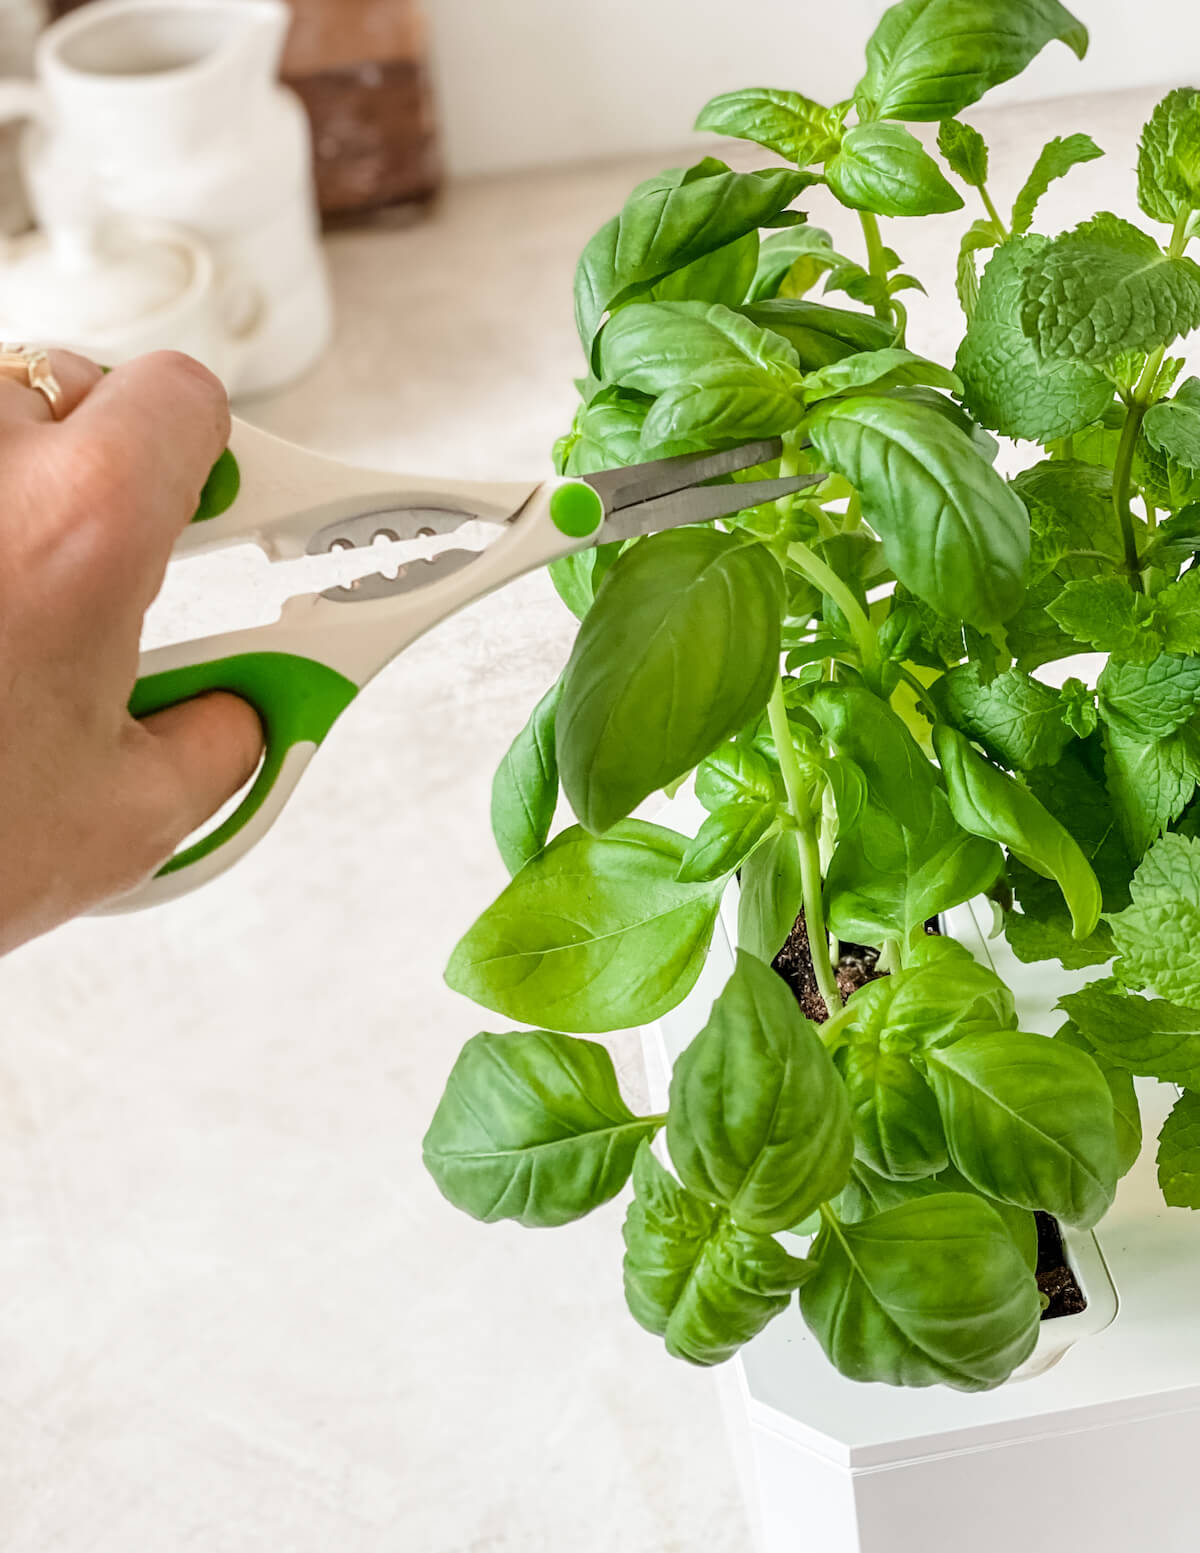 cutting fresh herbs for use